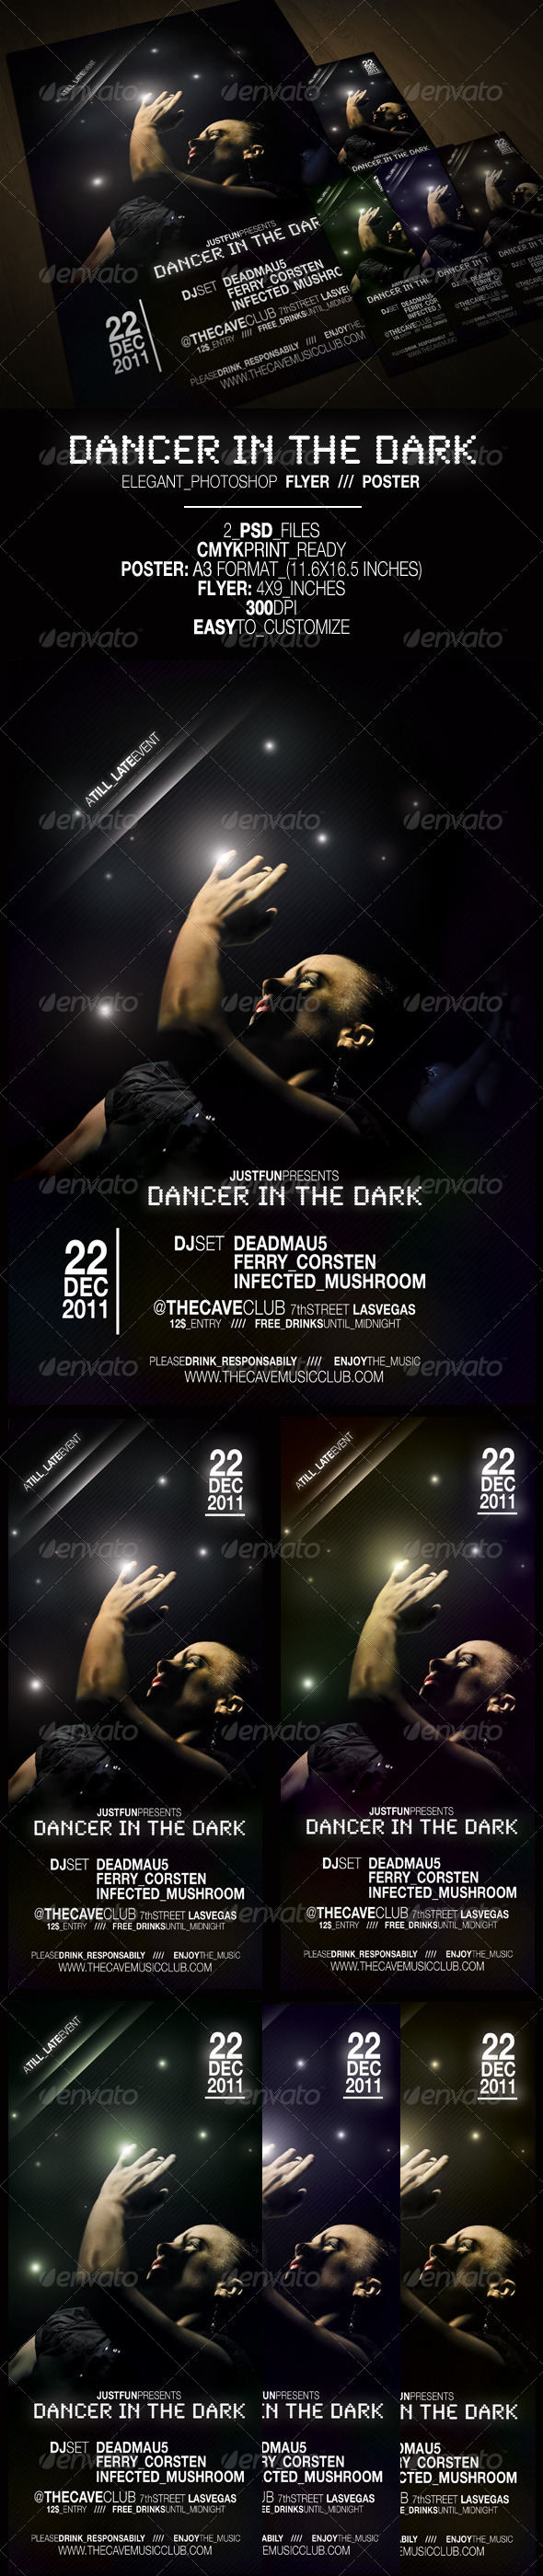 Graphic River Dancer in the Dark Poster & Flyer Print Templates -  Flyers  Events  Clubs & Parties 942769